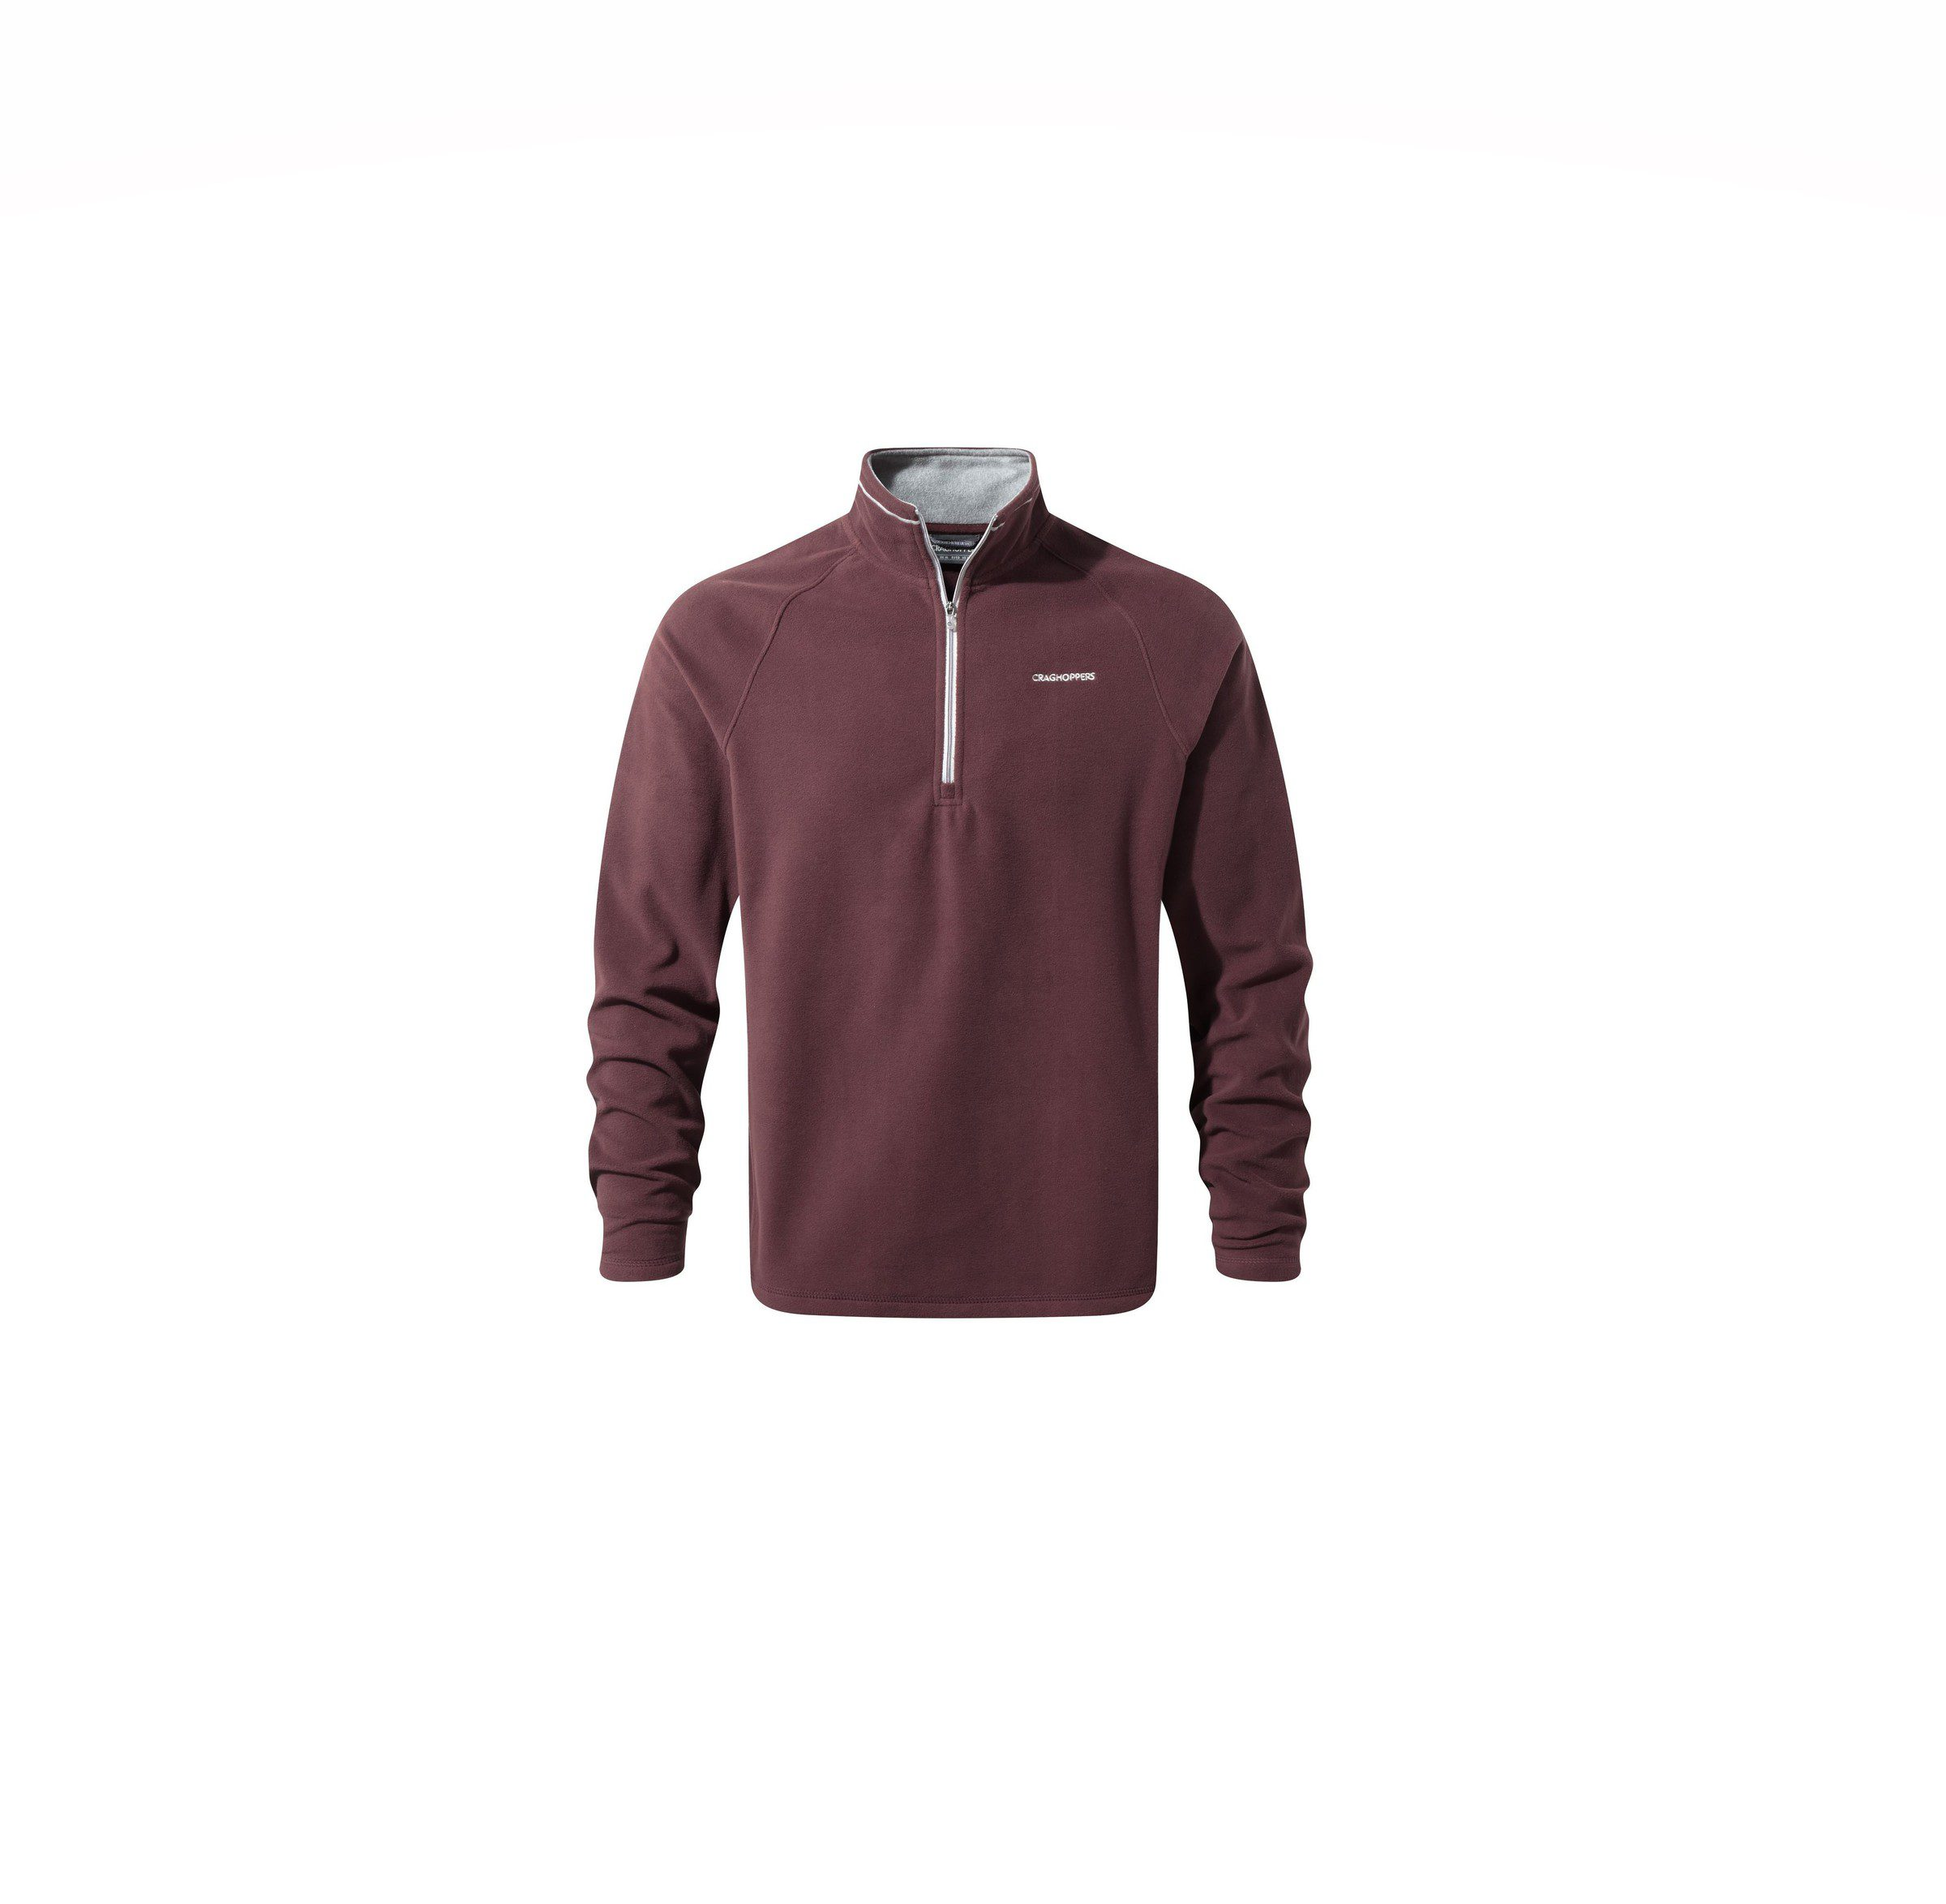 Craghoppers Selby Half Zip Fleece - Red Wine